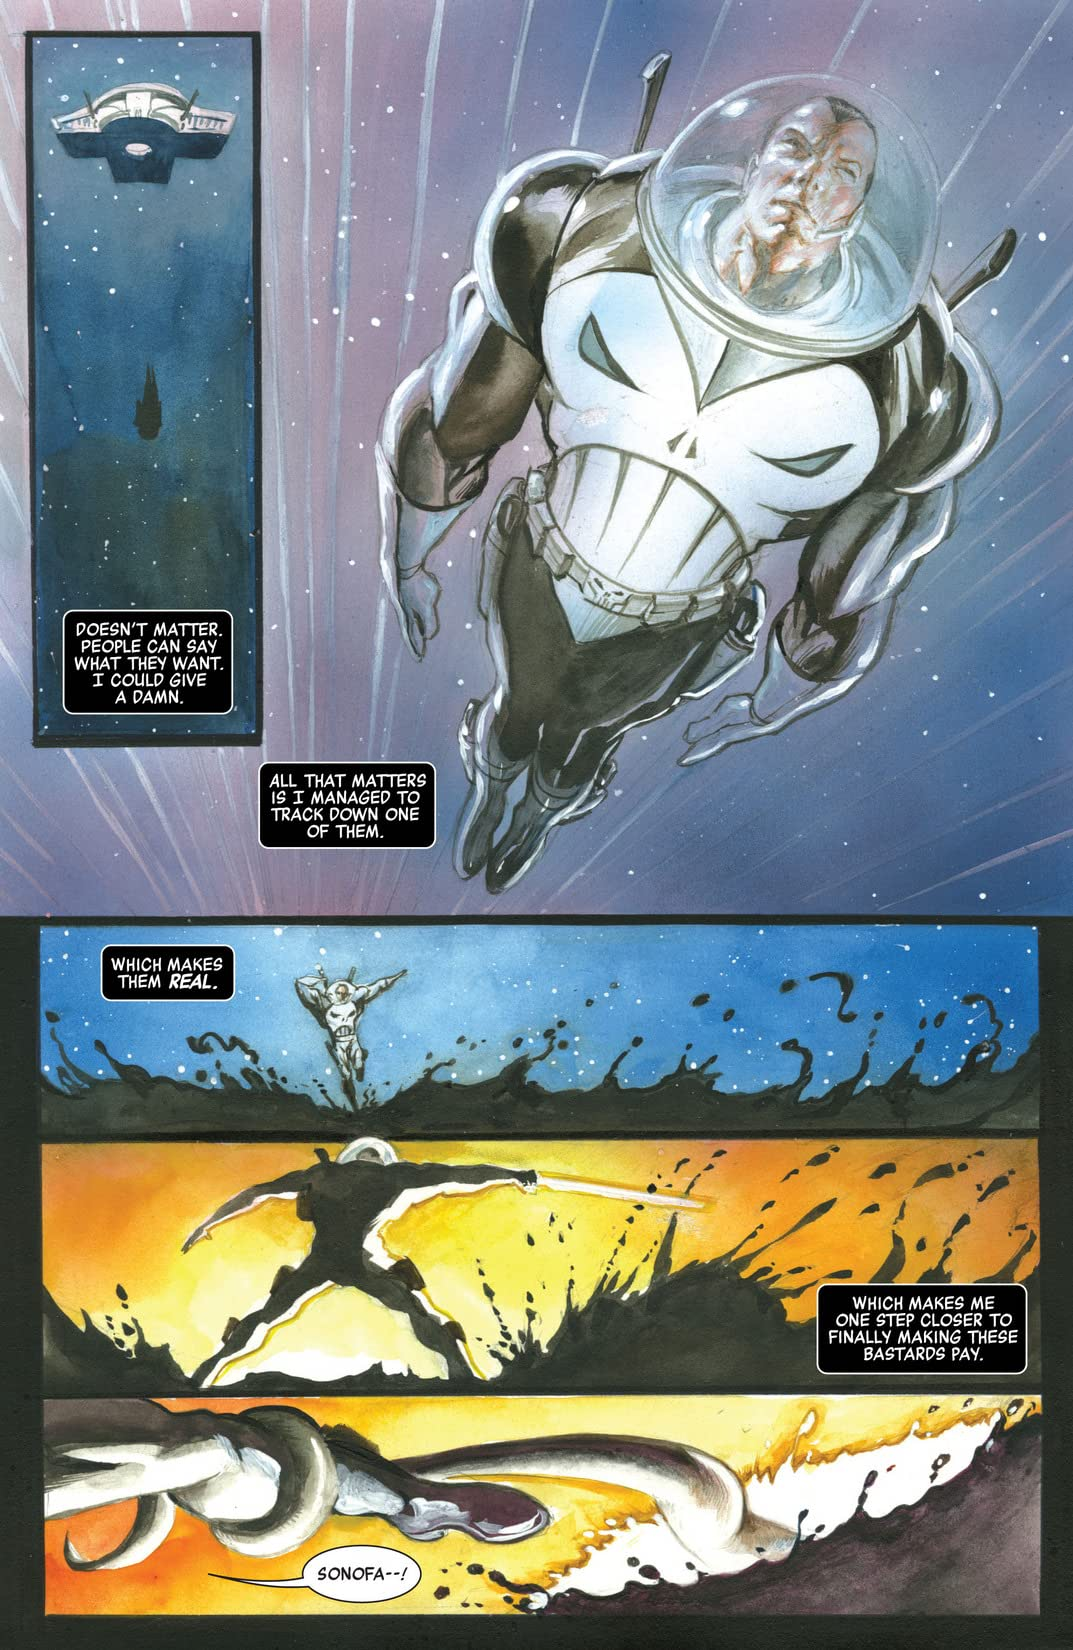 Space: Punisher #1 (of 4)